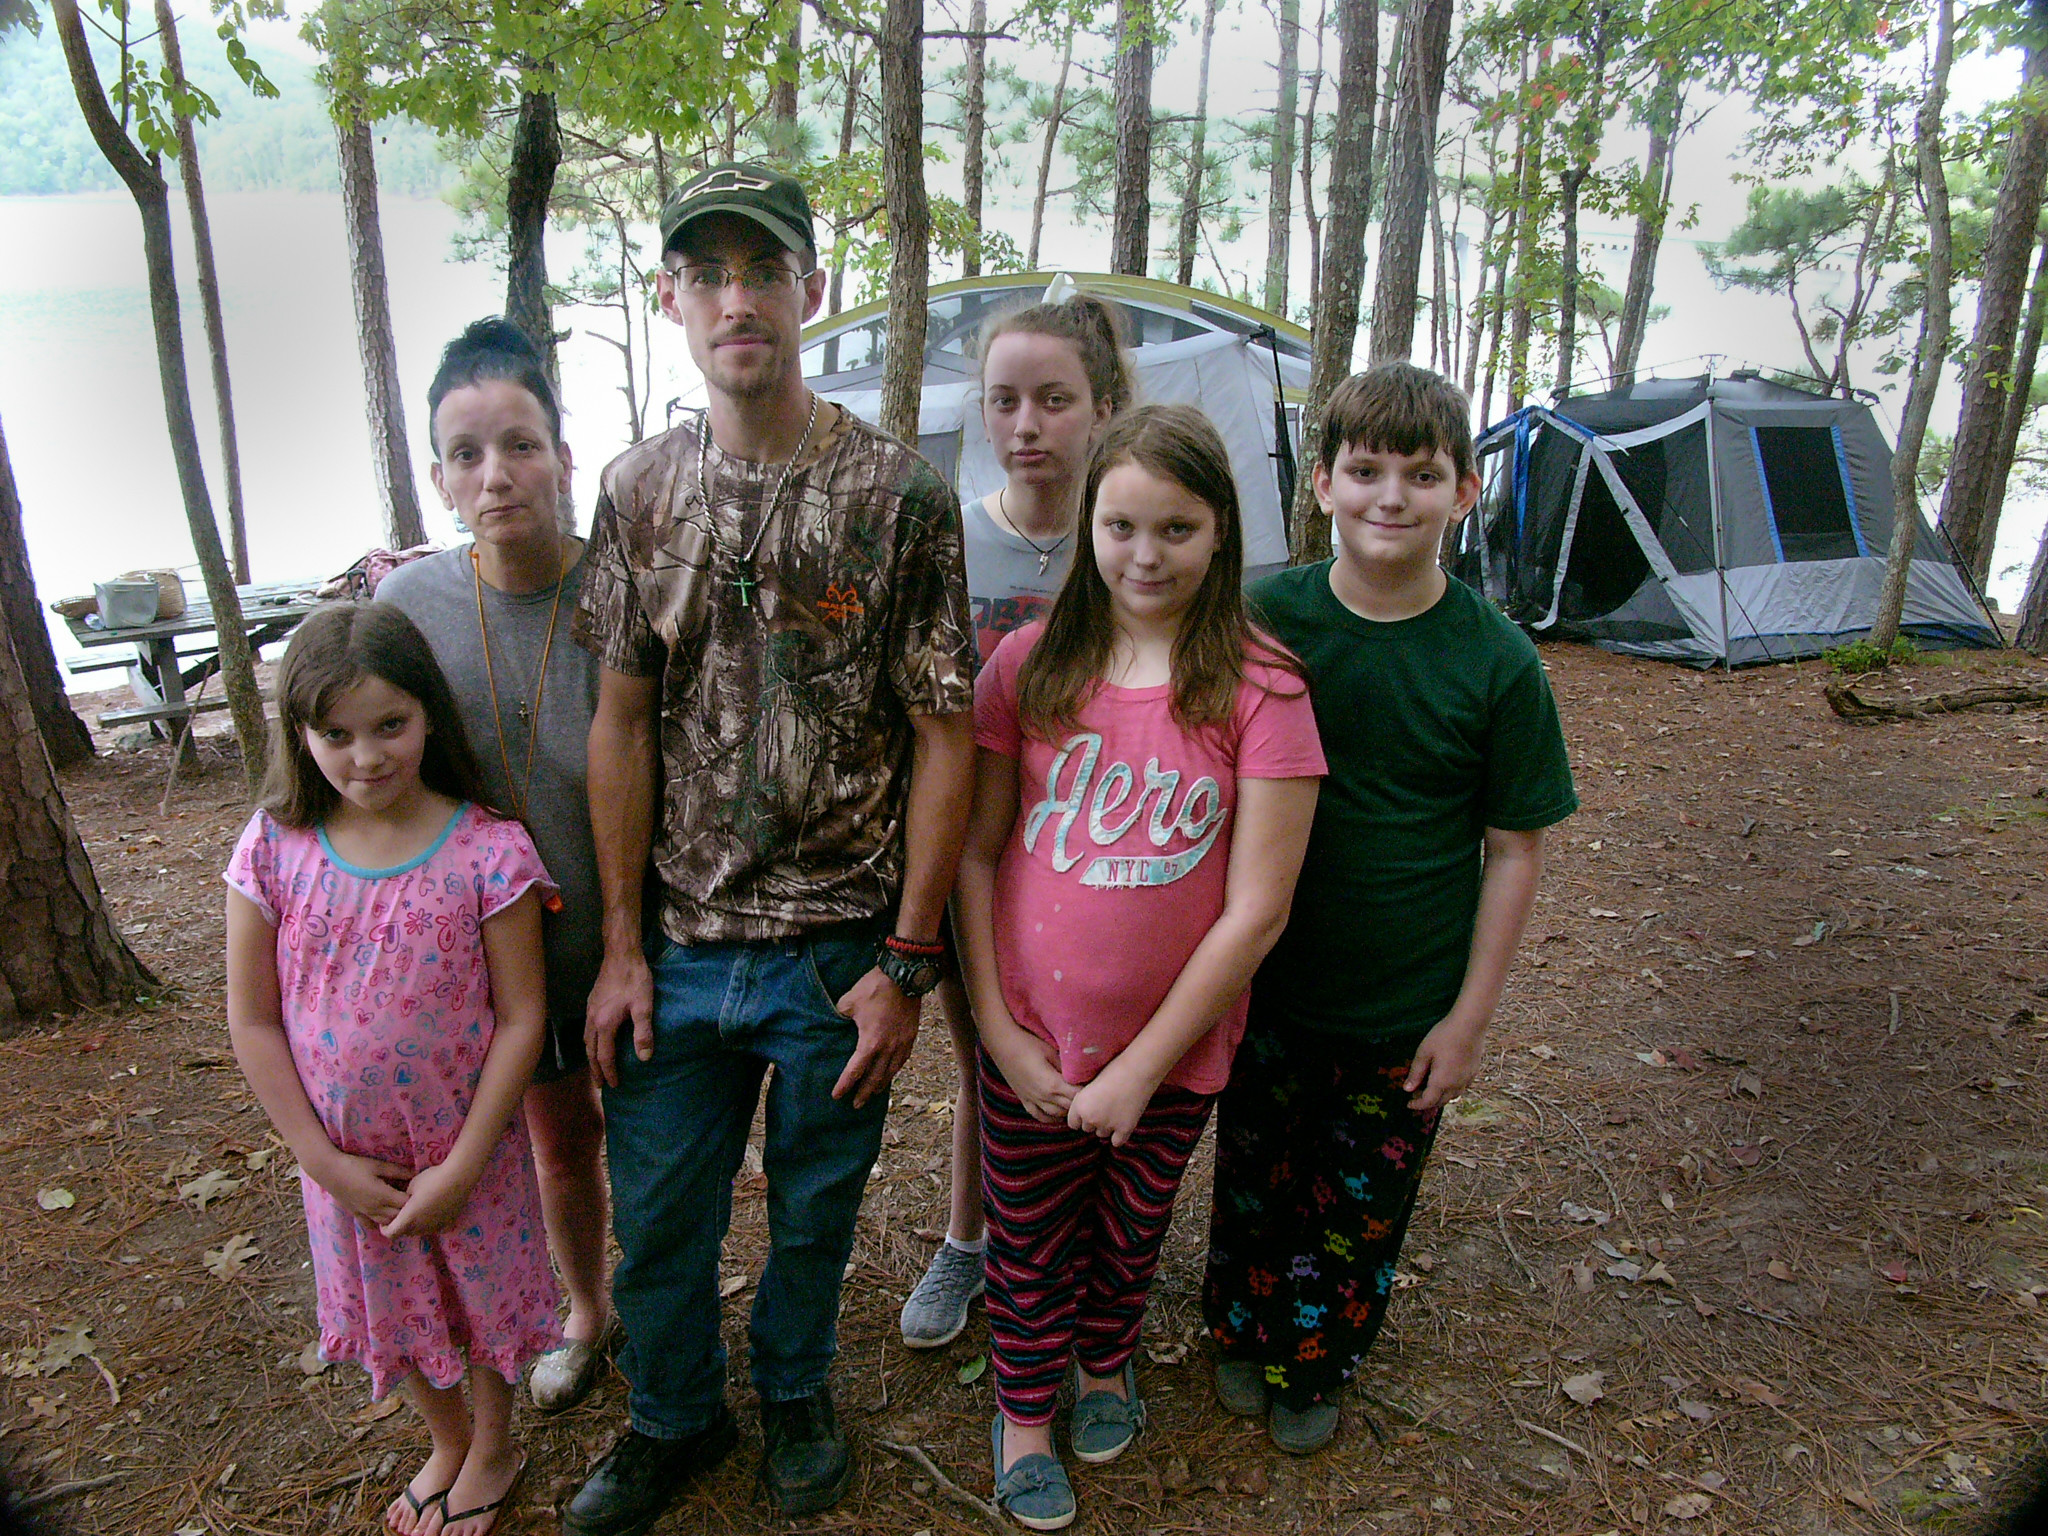 The Wilson family fled their home on Eutawville, South Carolina, as Hurricane Florence bore down on the Carolinas.